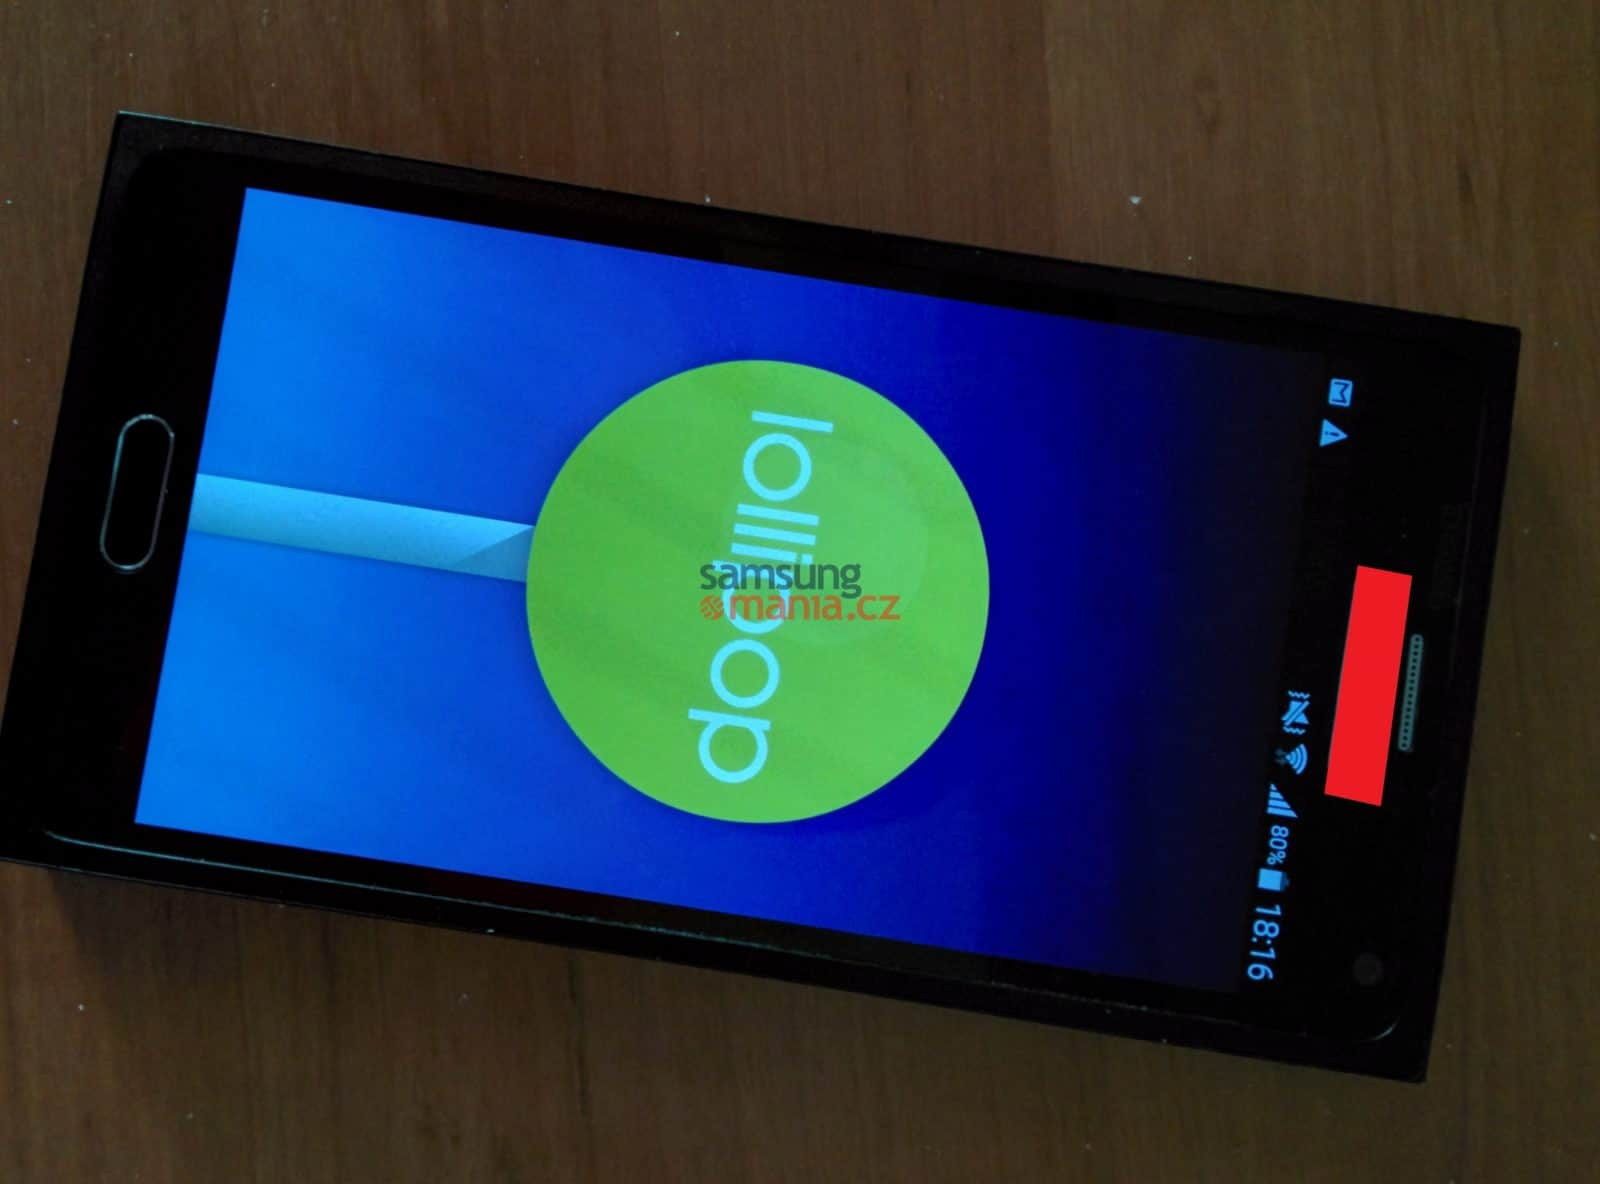 galaxy note 5 testbed